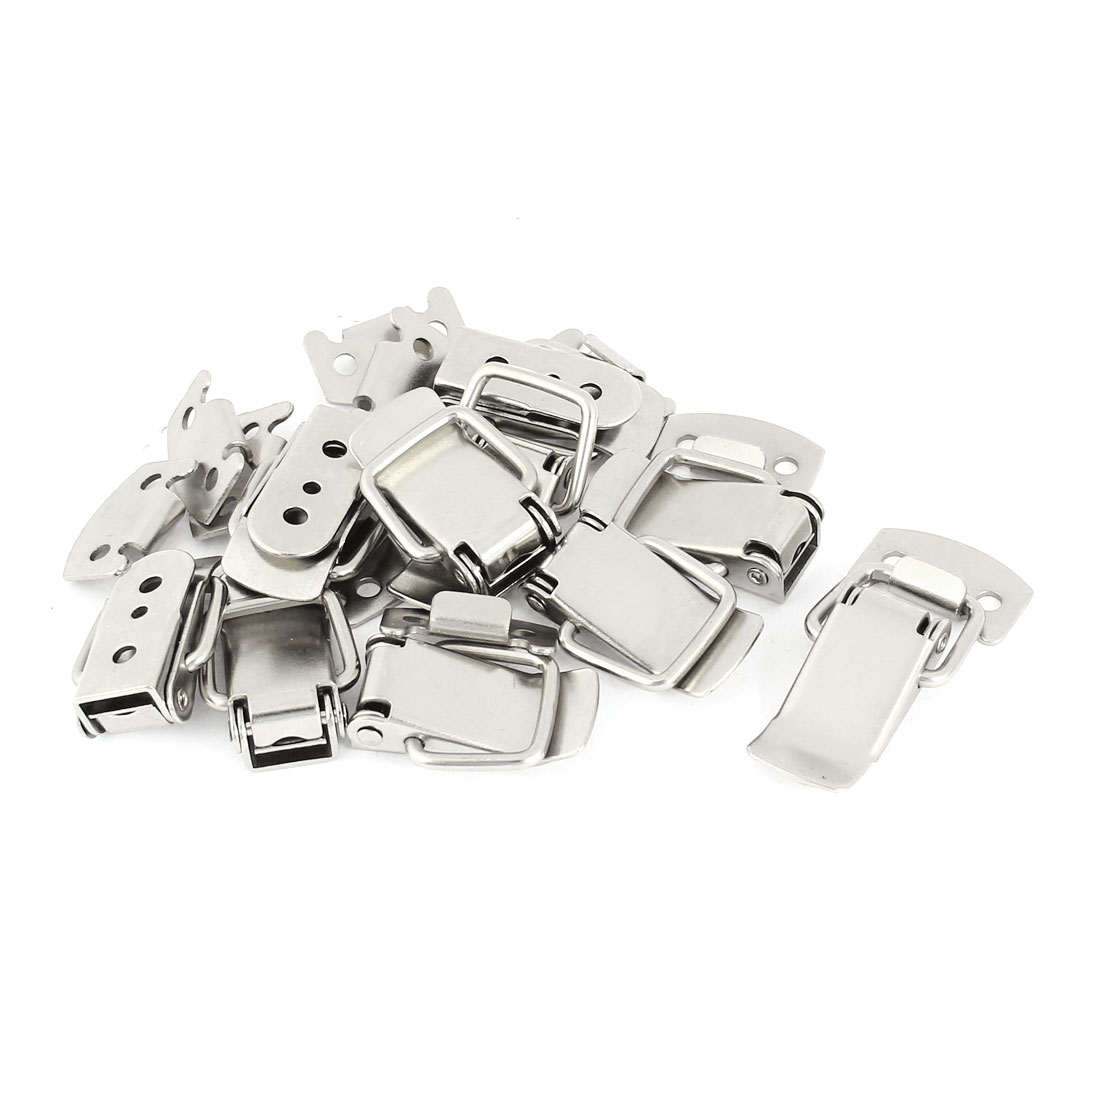 Chests Cases Boxes Spring Loaded Toggle Latch Catch Hasp Silver Tone 10sets